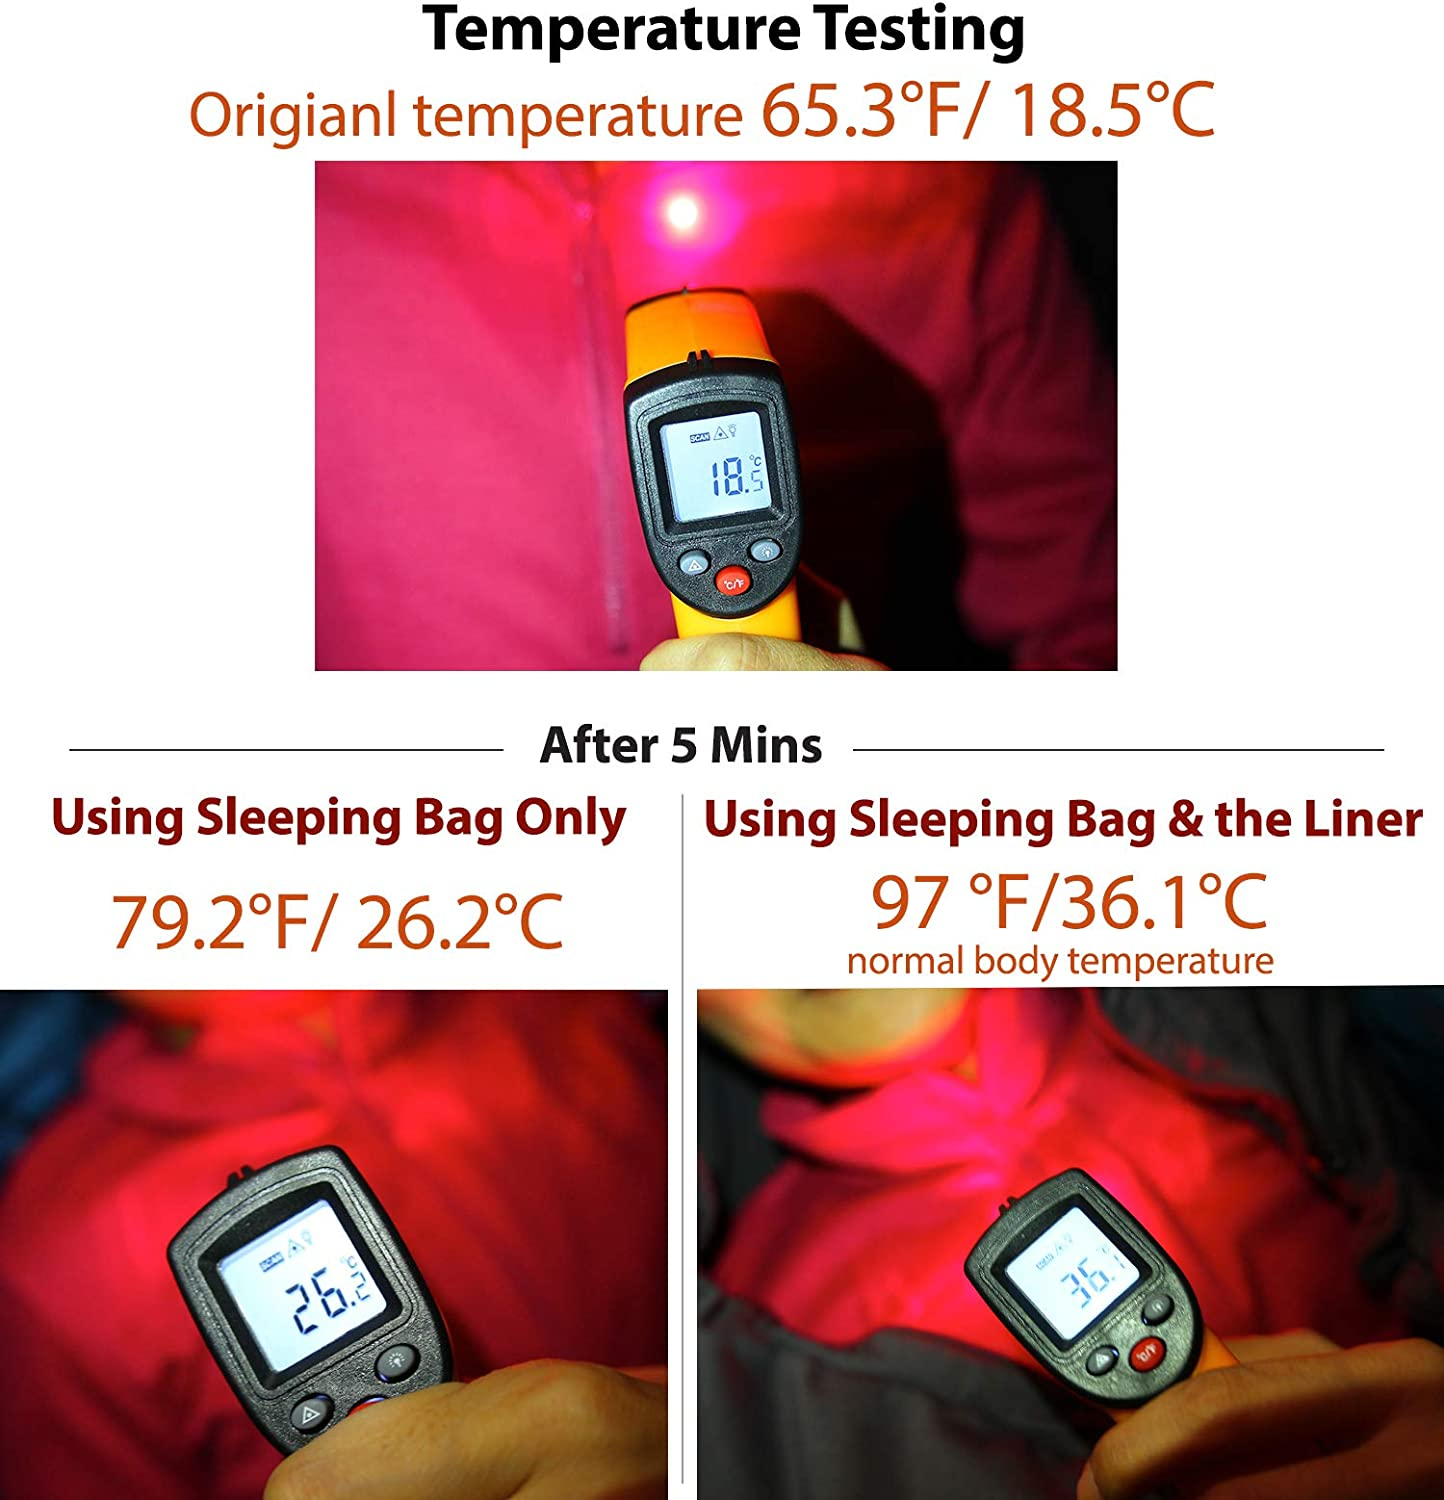 Lightweight Sleep Sack with Drawstring Hood and Stuff Sack Traveling Litume All Season Sleeping Bag Liner Adds Up to 27F Camping Compressible and Lightweight Mummy Sleeping Sack for Backpacking